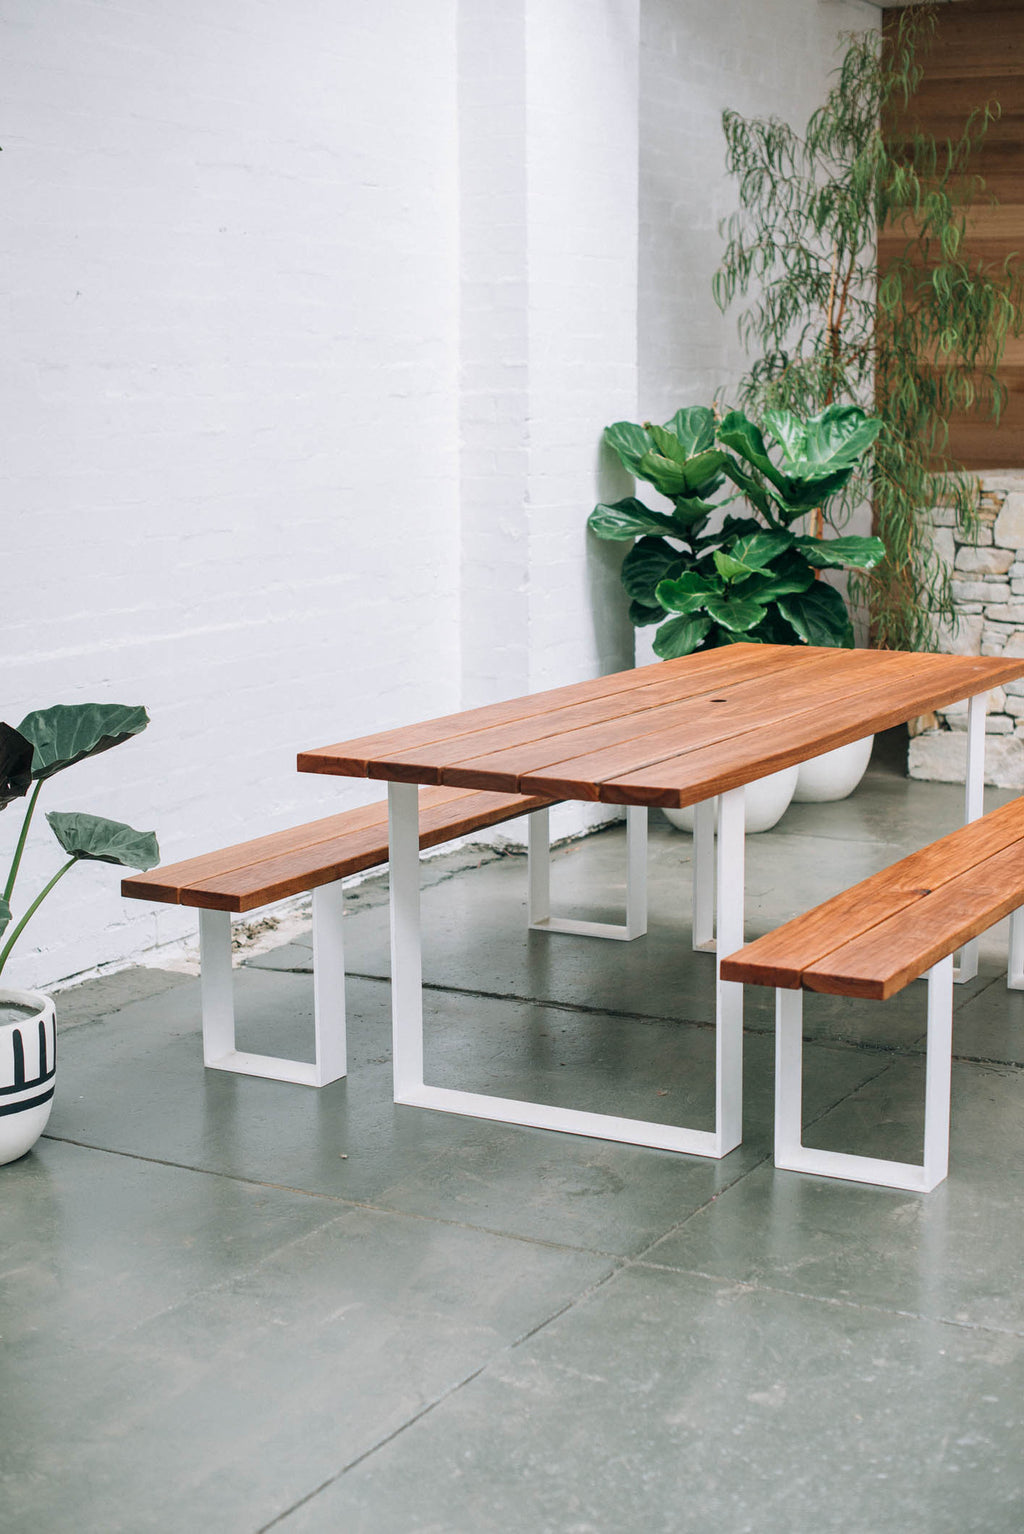 GARDEN TABLE + BENCHES